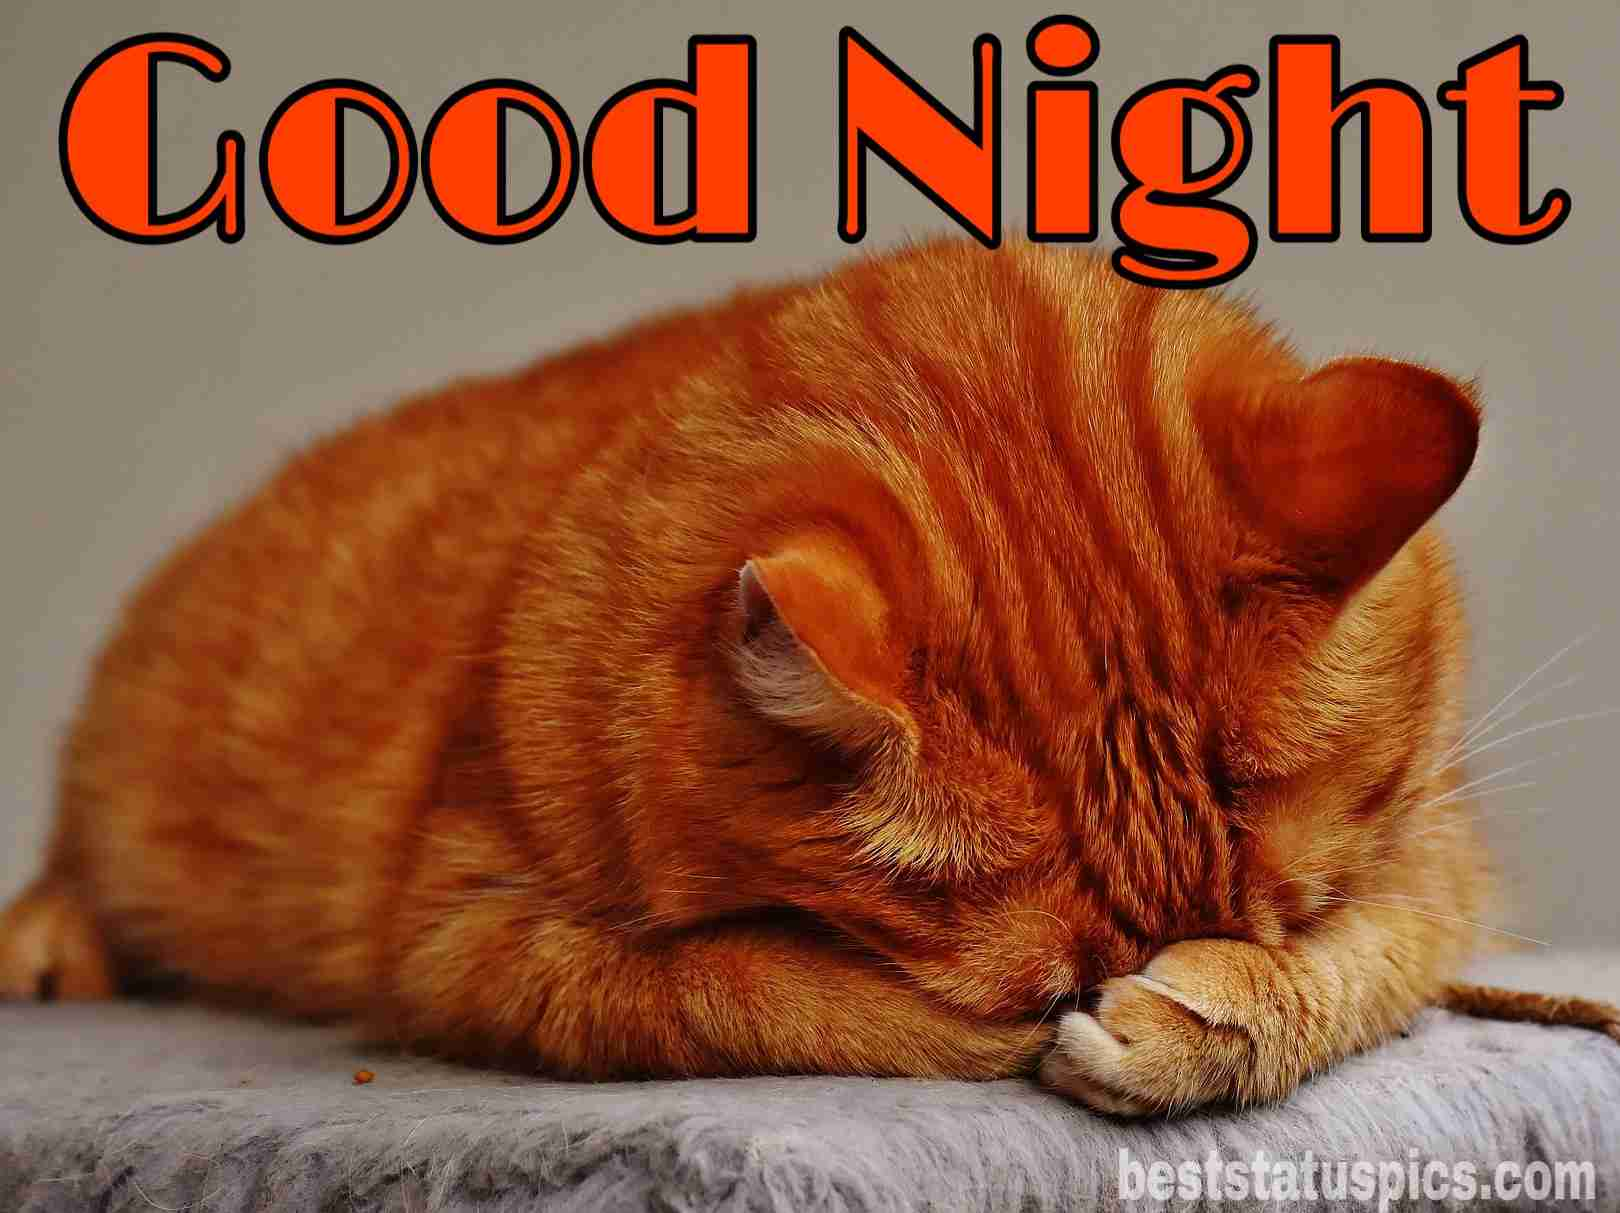 51 Cute Good Night Hd Images With Cat Kitty Kitten Best Status Pics